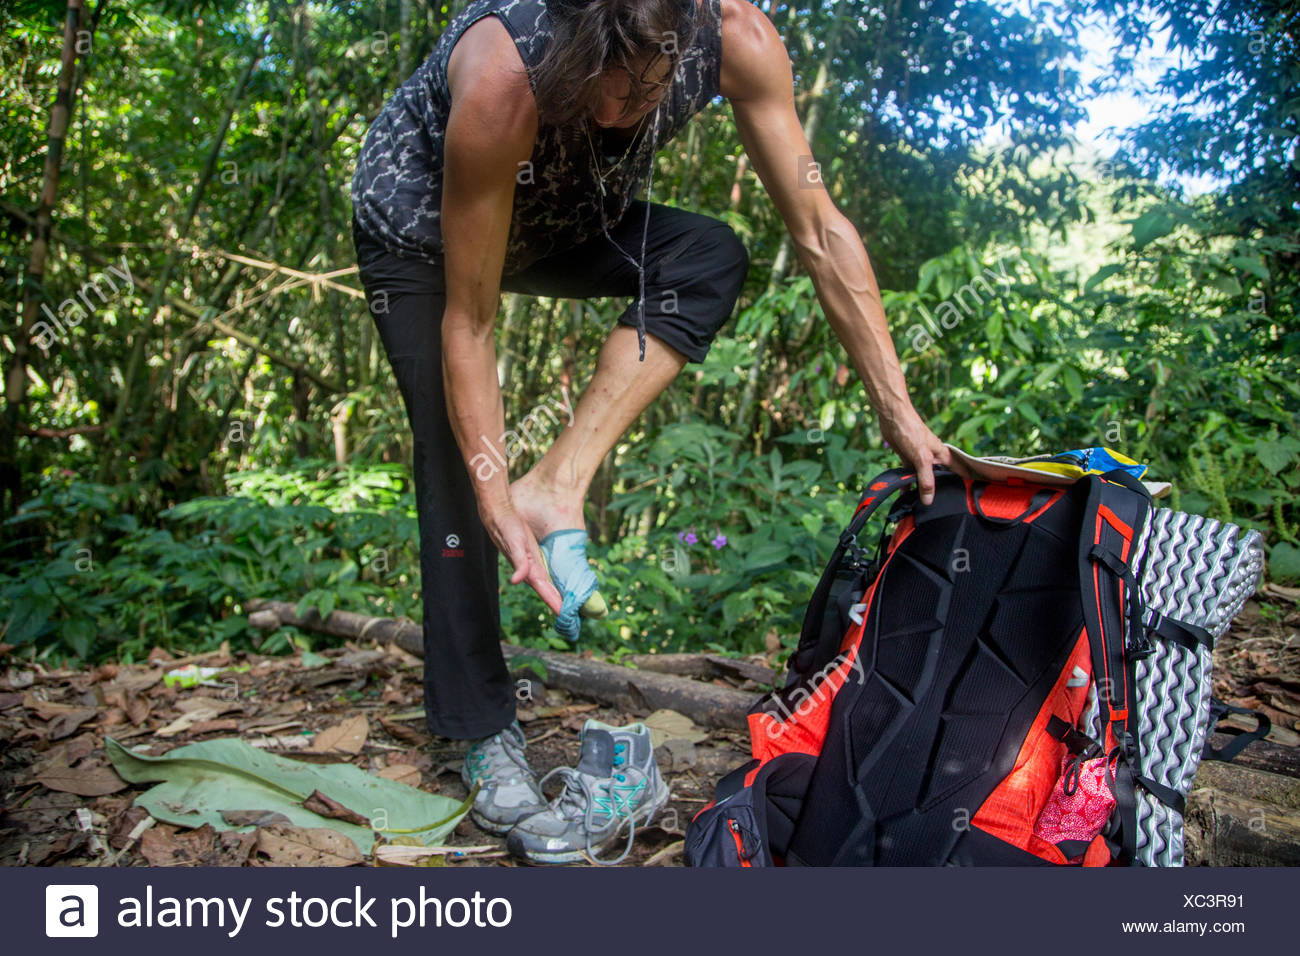 An expedition member removes her shoes and socks to tend to bug bites and leeches. - Stock Image